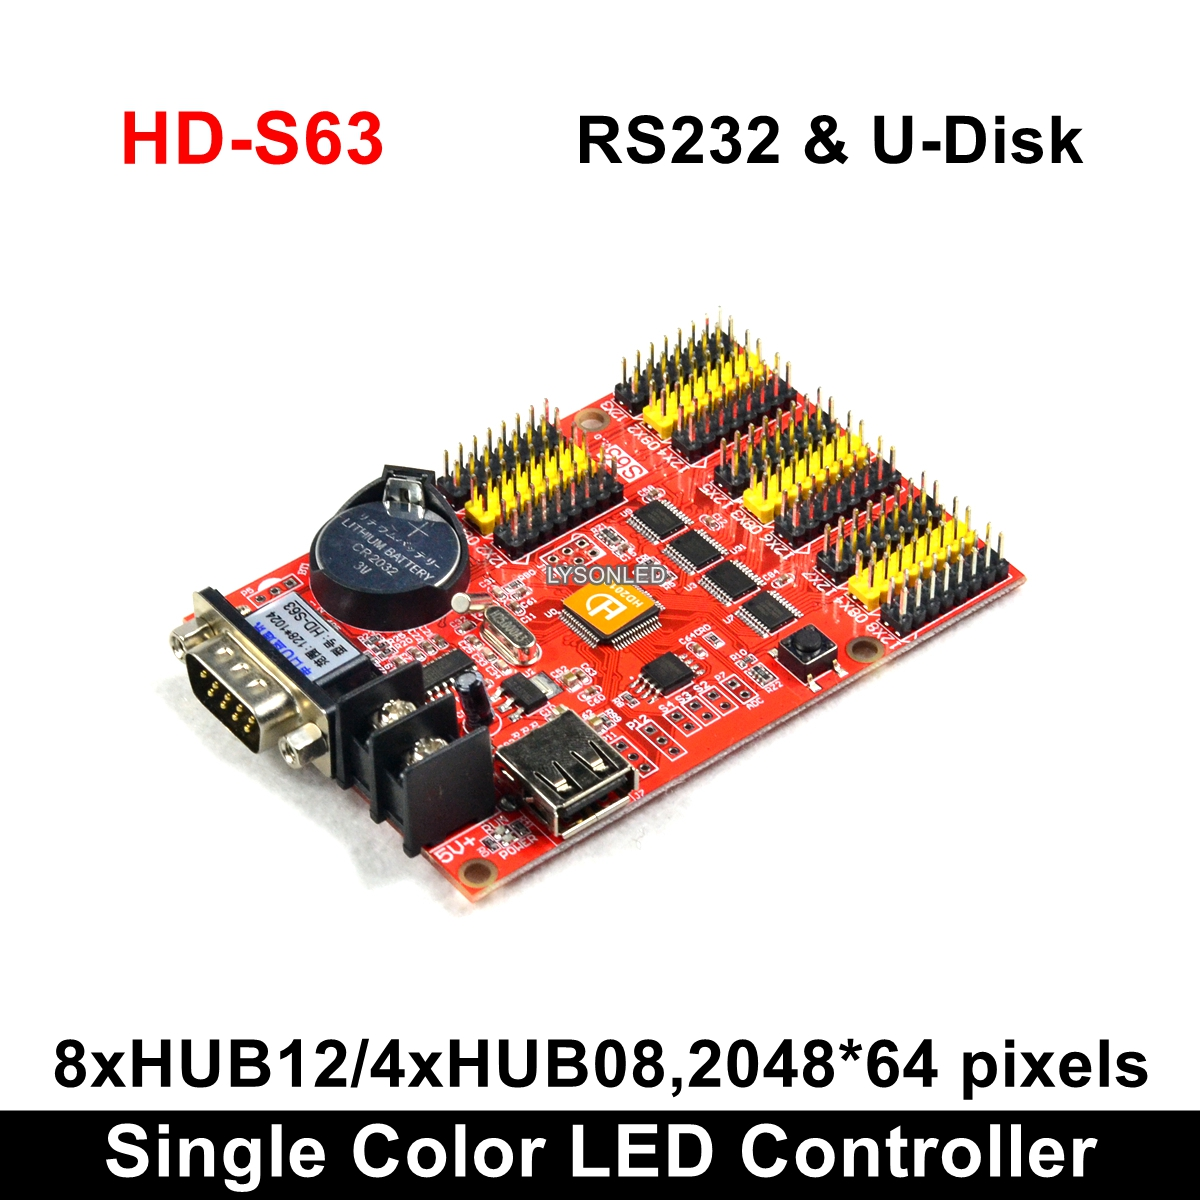 HD-S63 USB-Disk & Serial 232 Communication Ports Huidu Single Color P10 LED Display Control Card, Two Color LED Signs Controller